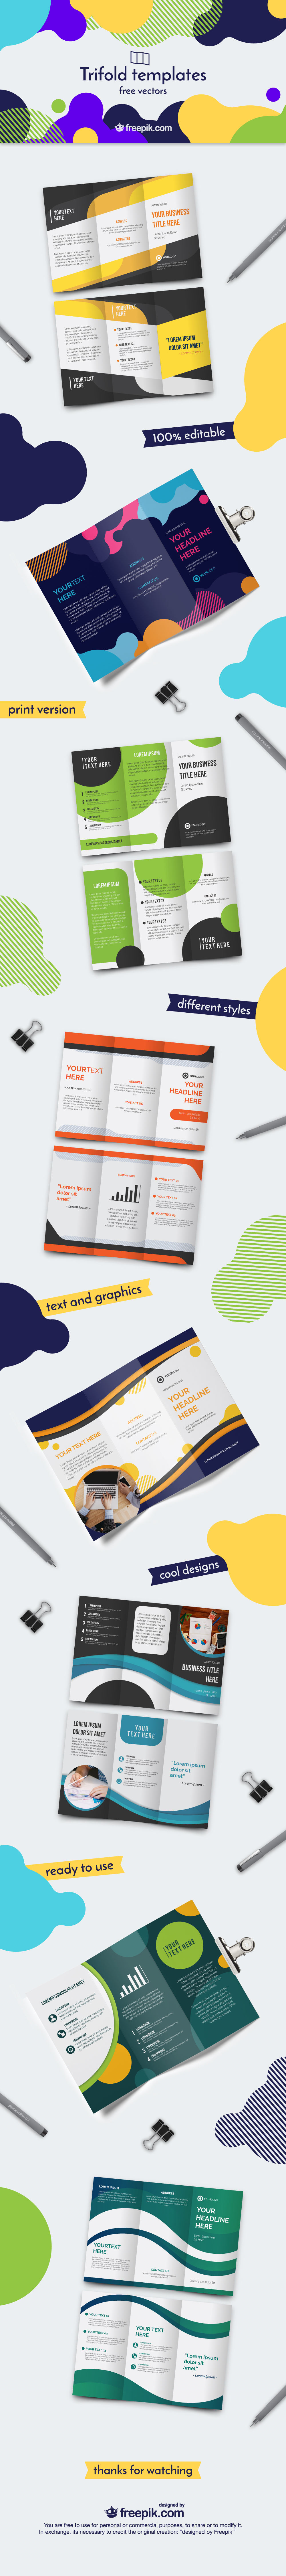 Free Trifold Brochure Vector Templates